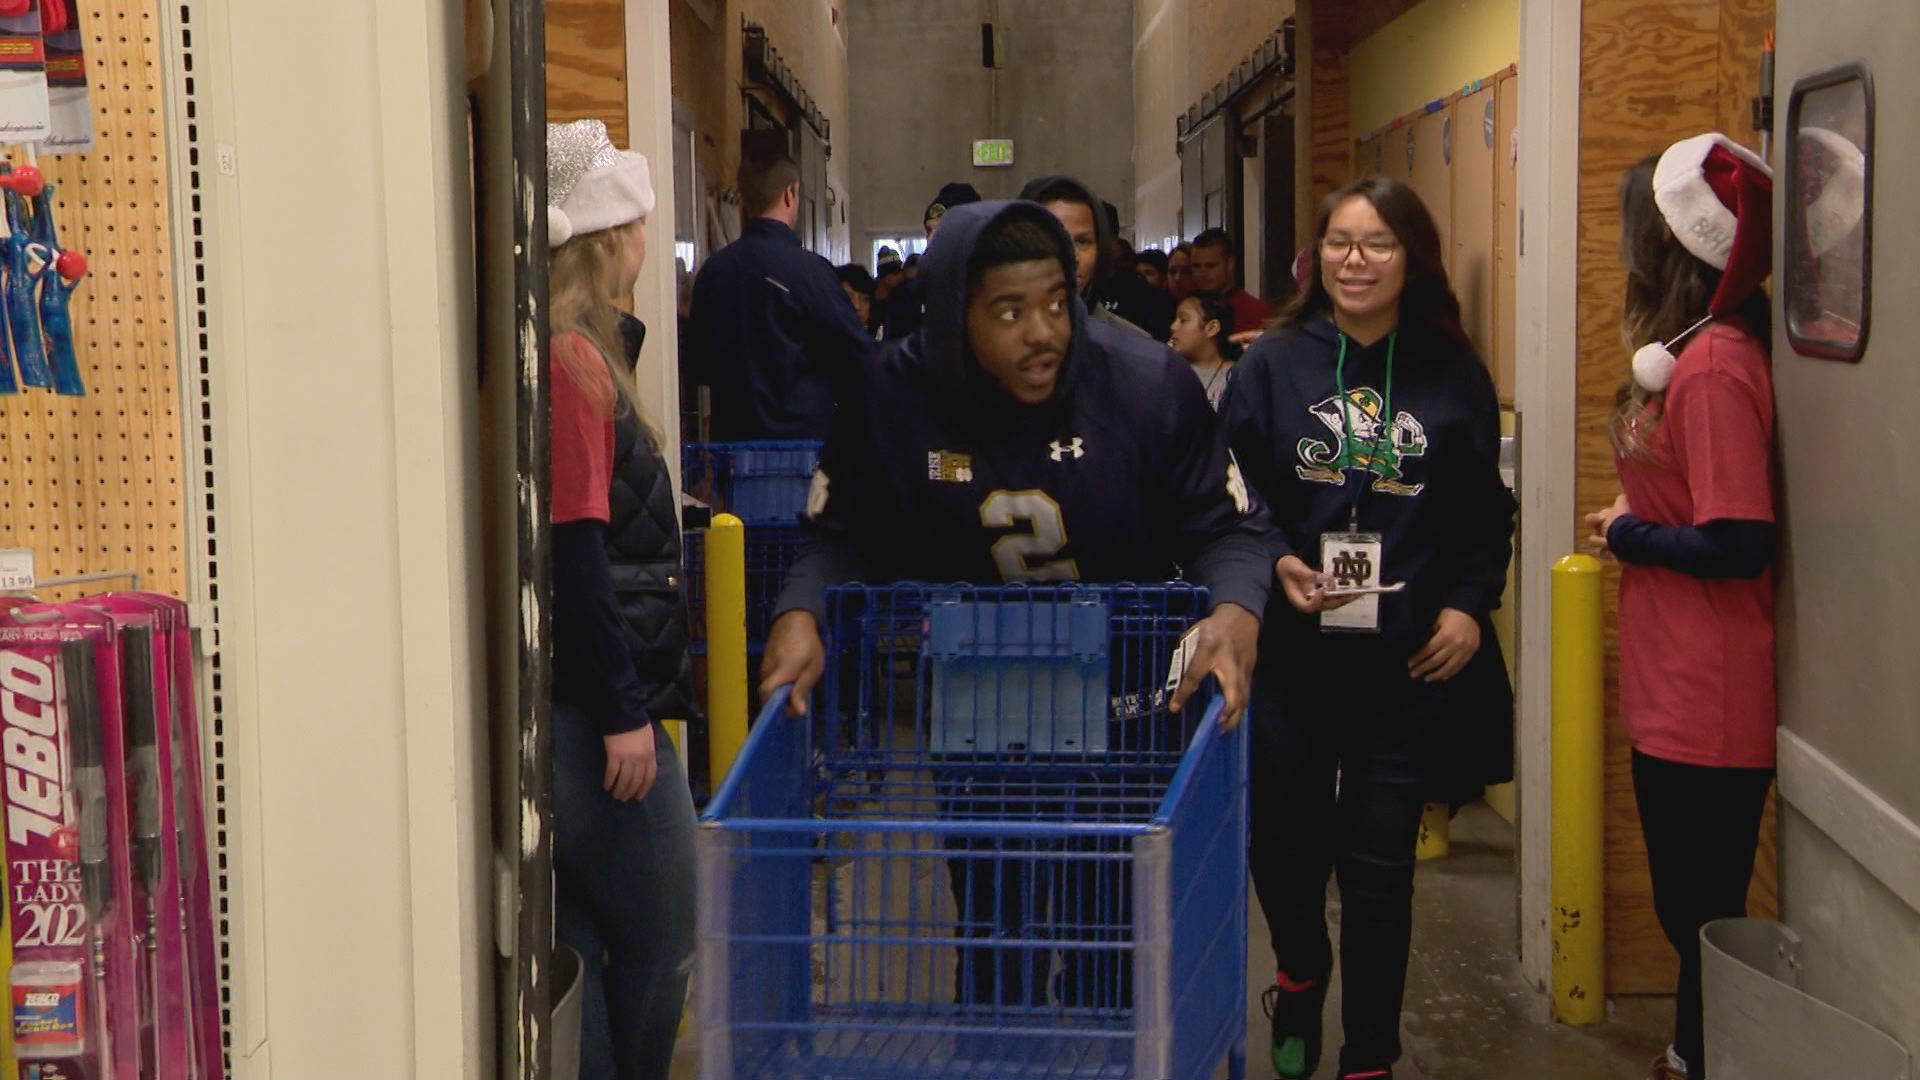 Notre Dame football team enters Meijer shopping center during 6th annual Shop with a Player event // WSBT 22 Photo<p></p>